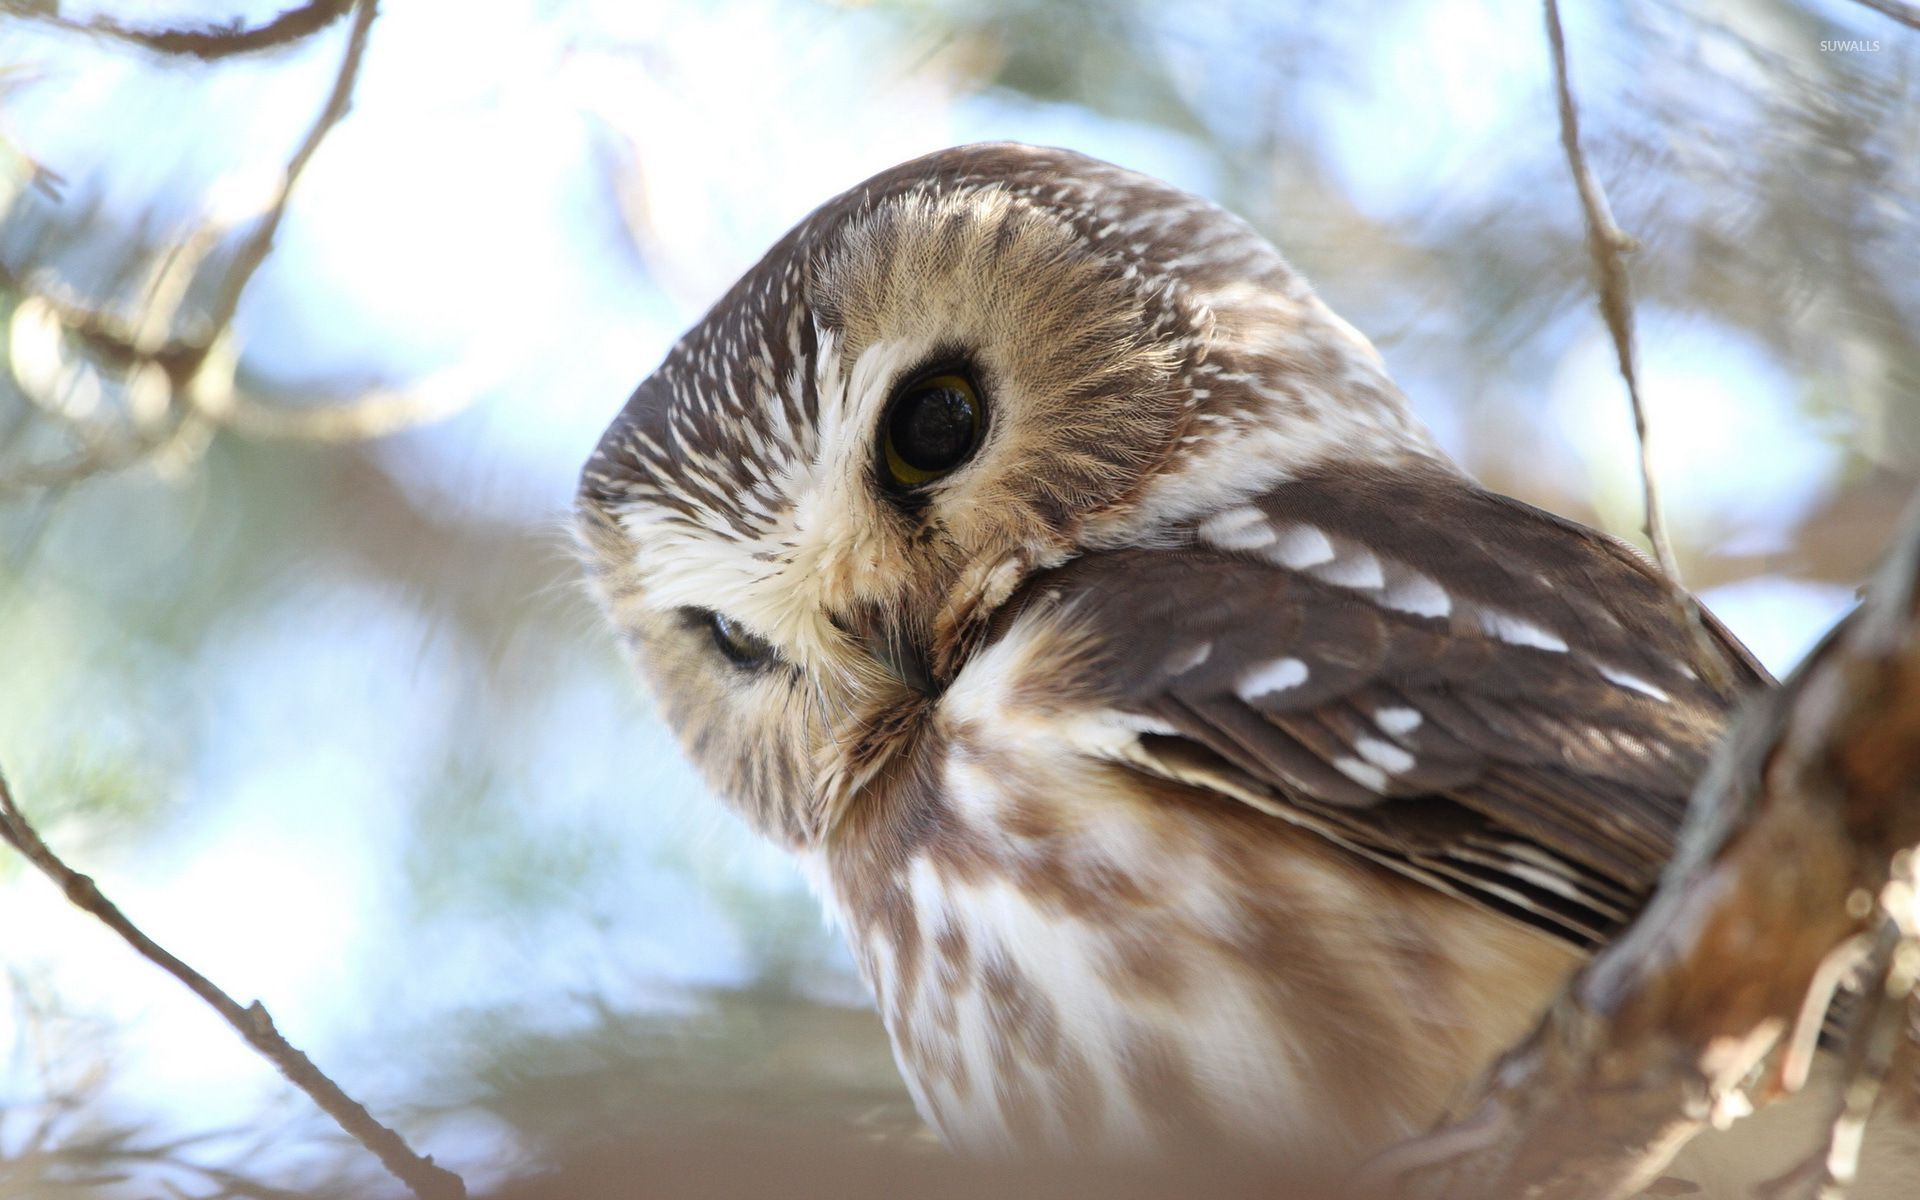 Cute Baby Hd Wallpaper For Laptop Barred Owl 2 Wallpaper Animal Wallpapers 32628